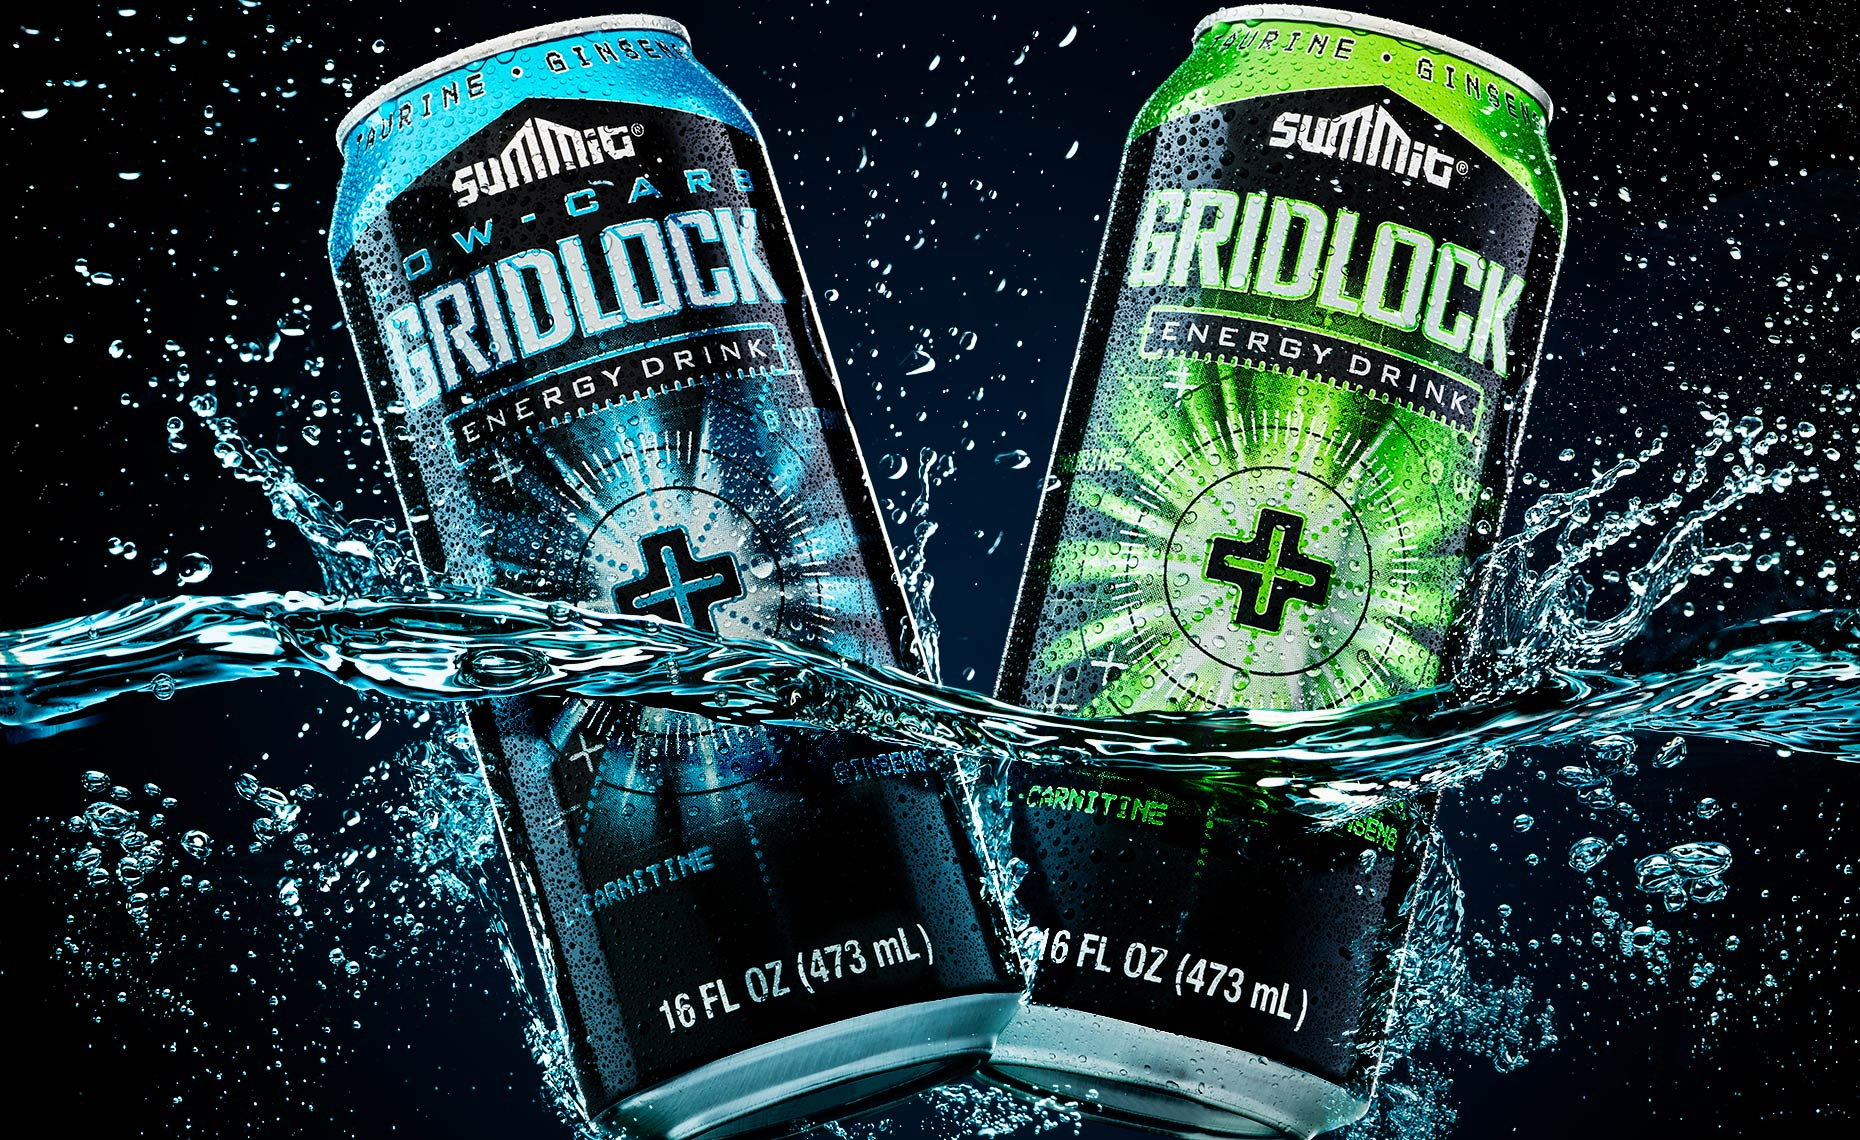 splash photography of gridlock-energy-drink by Brian Kaldorf